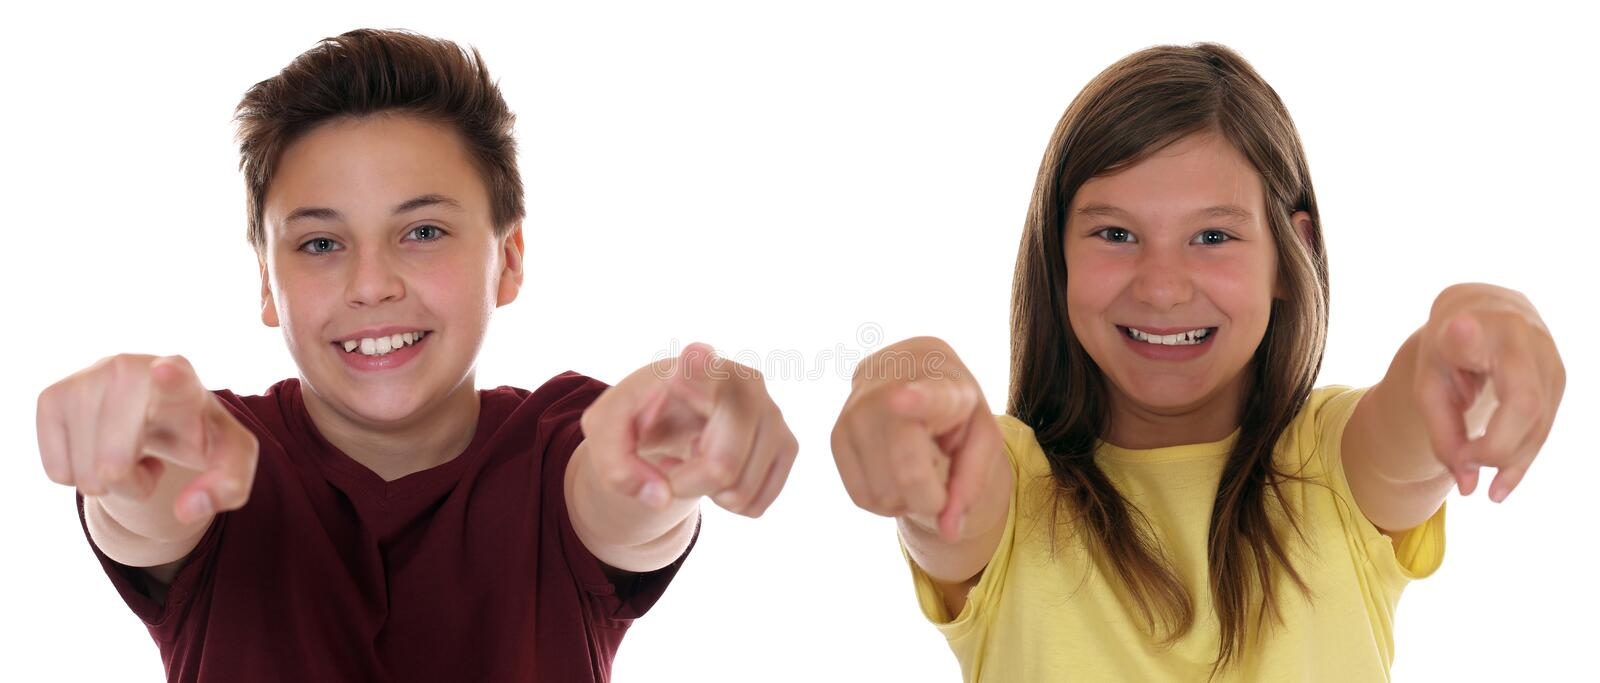 Young teenager or children pointing with finger I want you royalty free stock photo